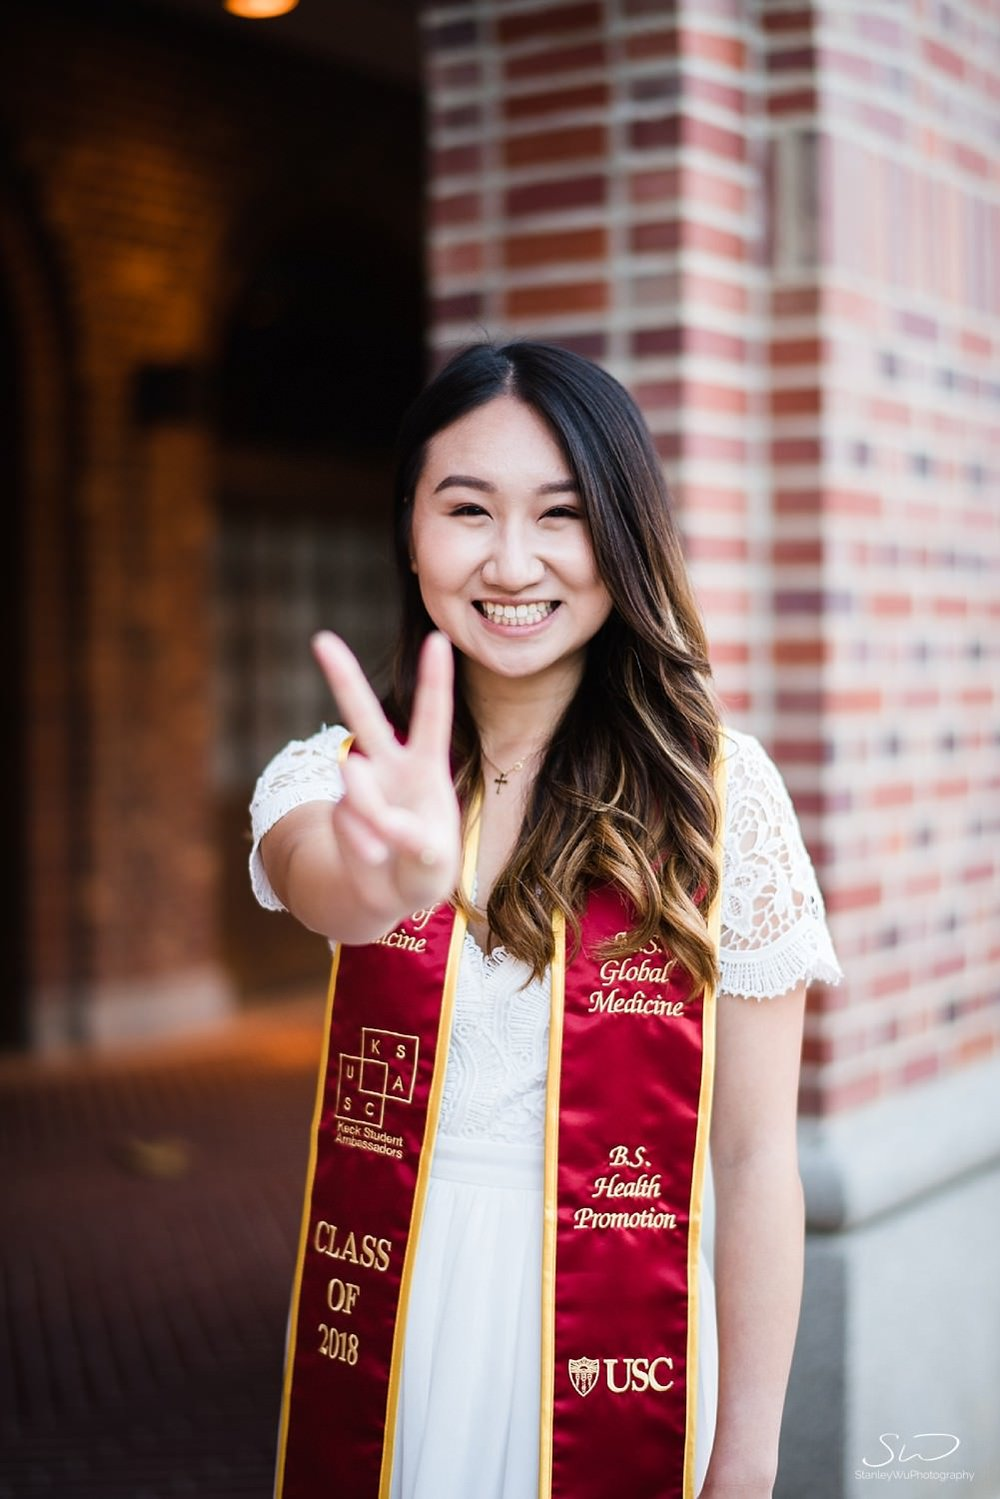 Fight on at Bovard at USC | Los Angeles Orange County Senior Portrait & Wedding Photographer